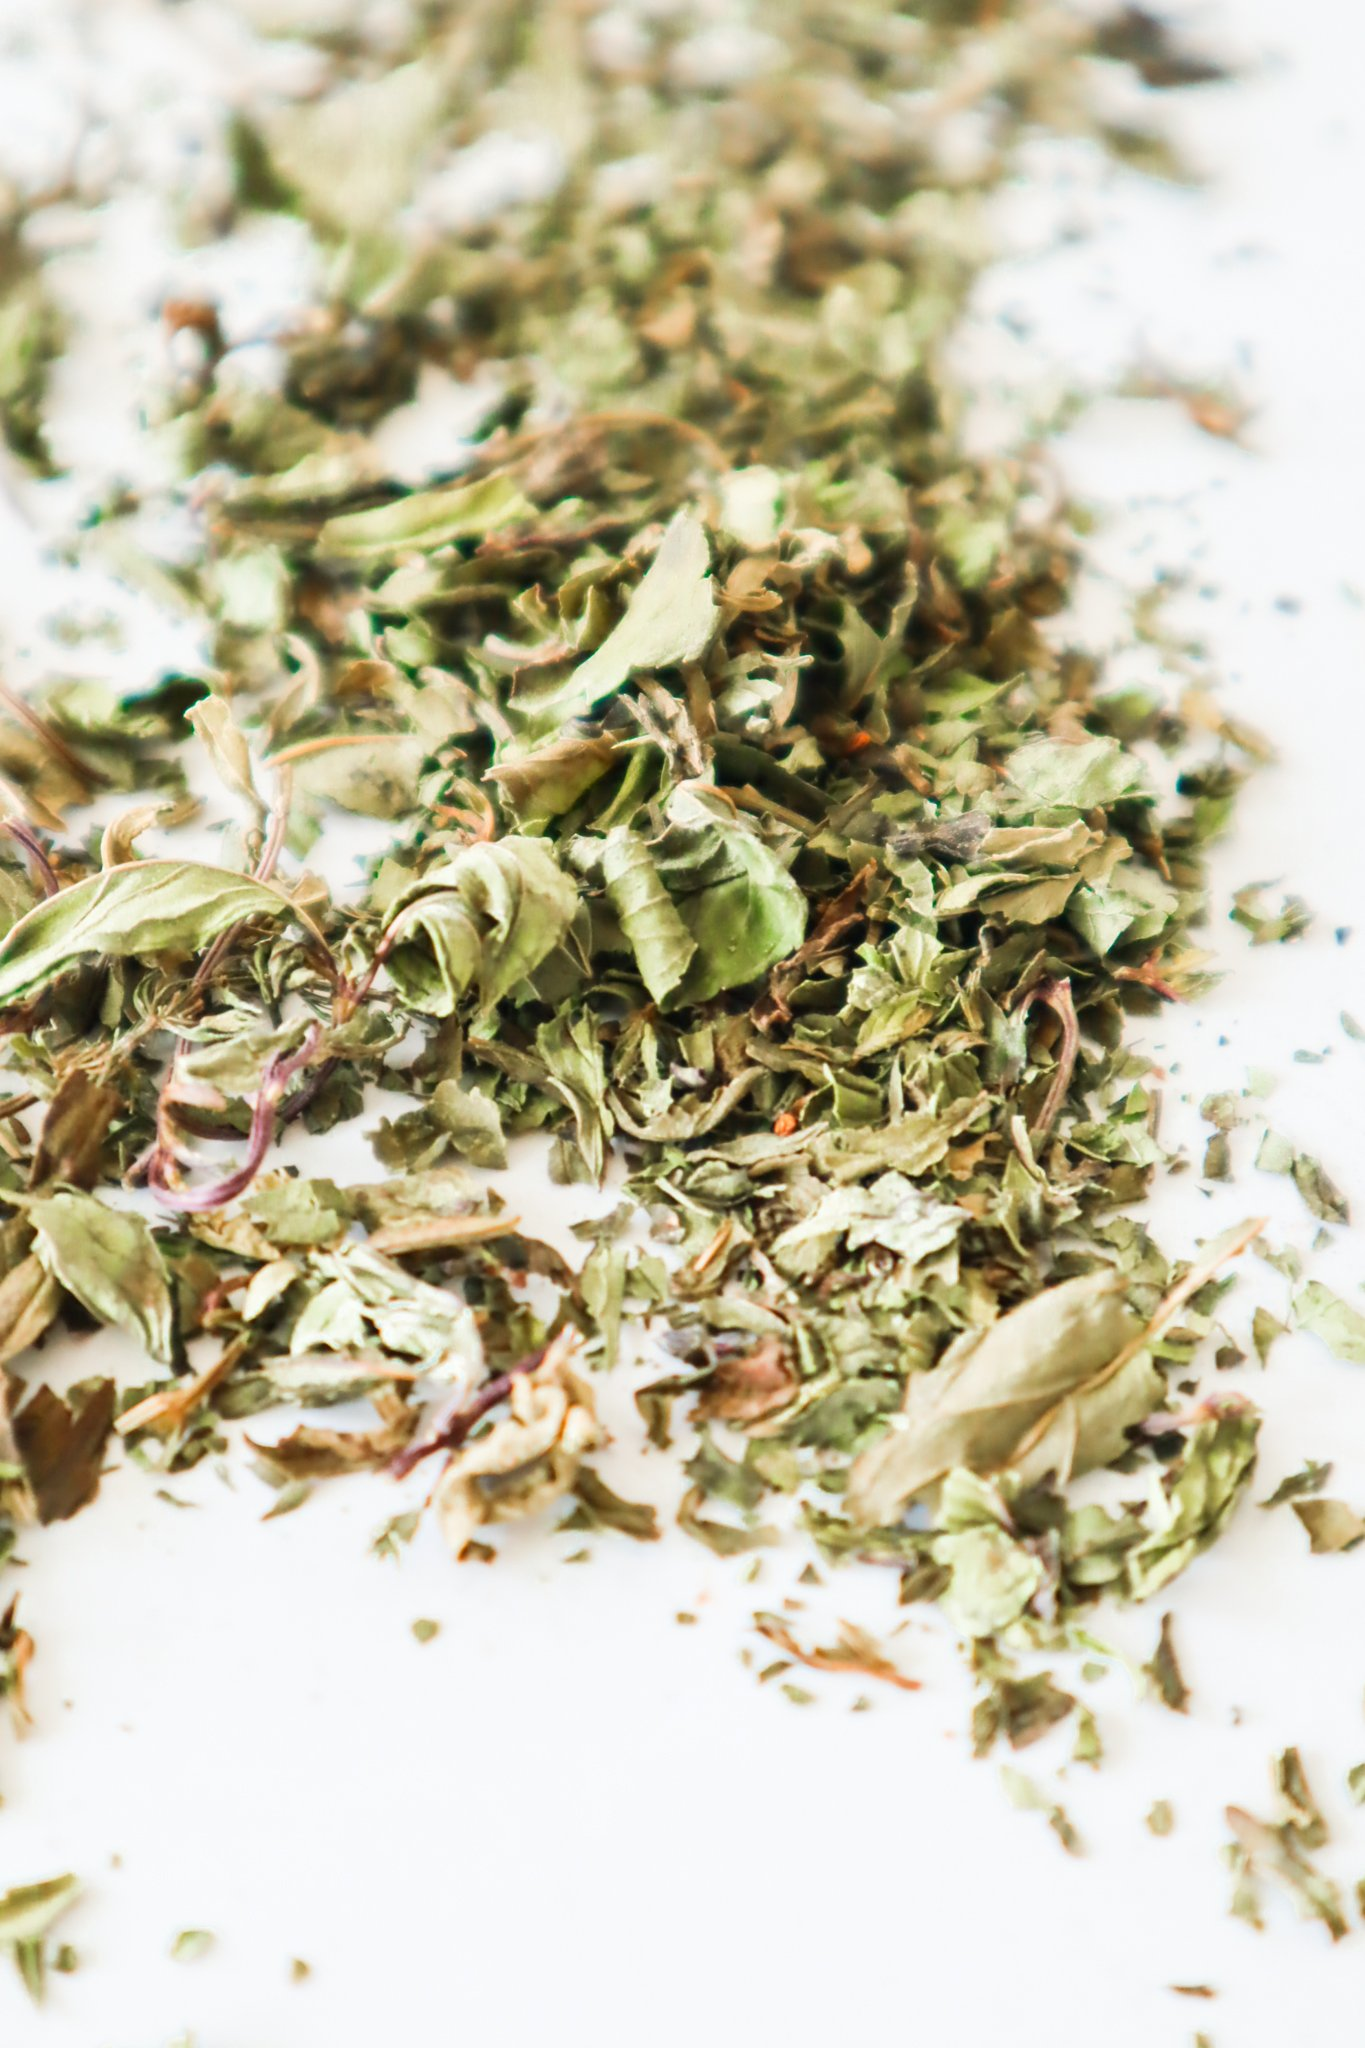 learn how to dry basil naturally and in the oven without browning! You'll also learn how to use and store dried basil and also about the health benefits of basil.